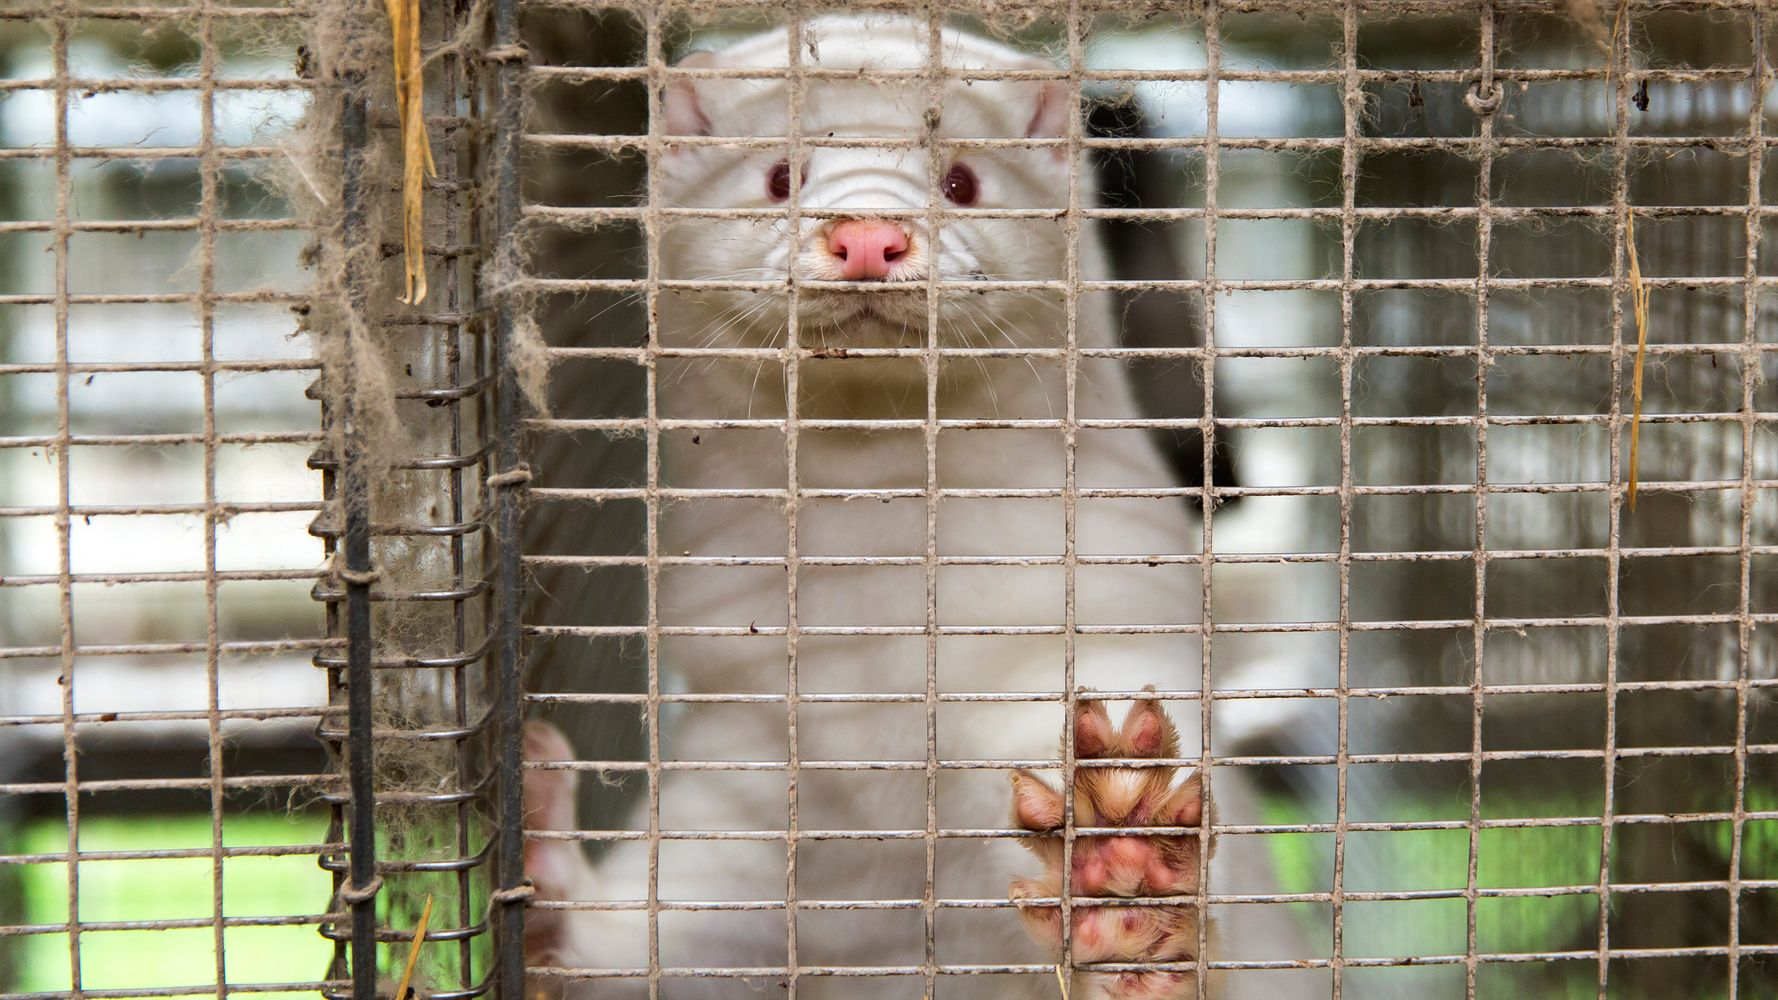 Minks Culled Over COVID-19 Fears Are Rising From Their Mass Graves